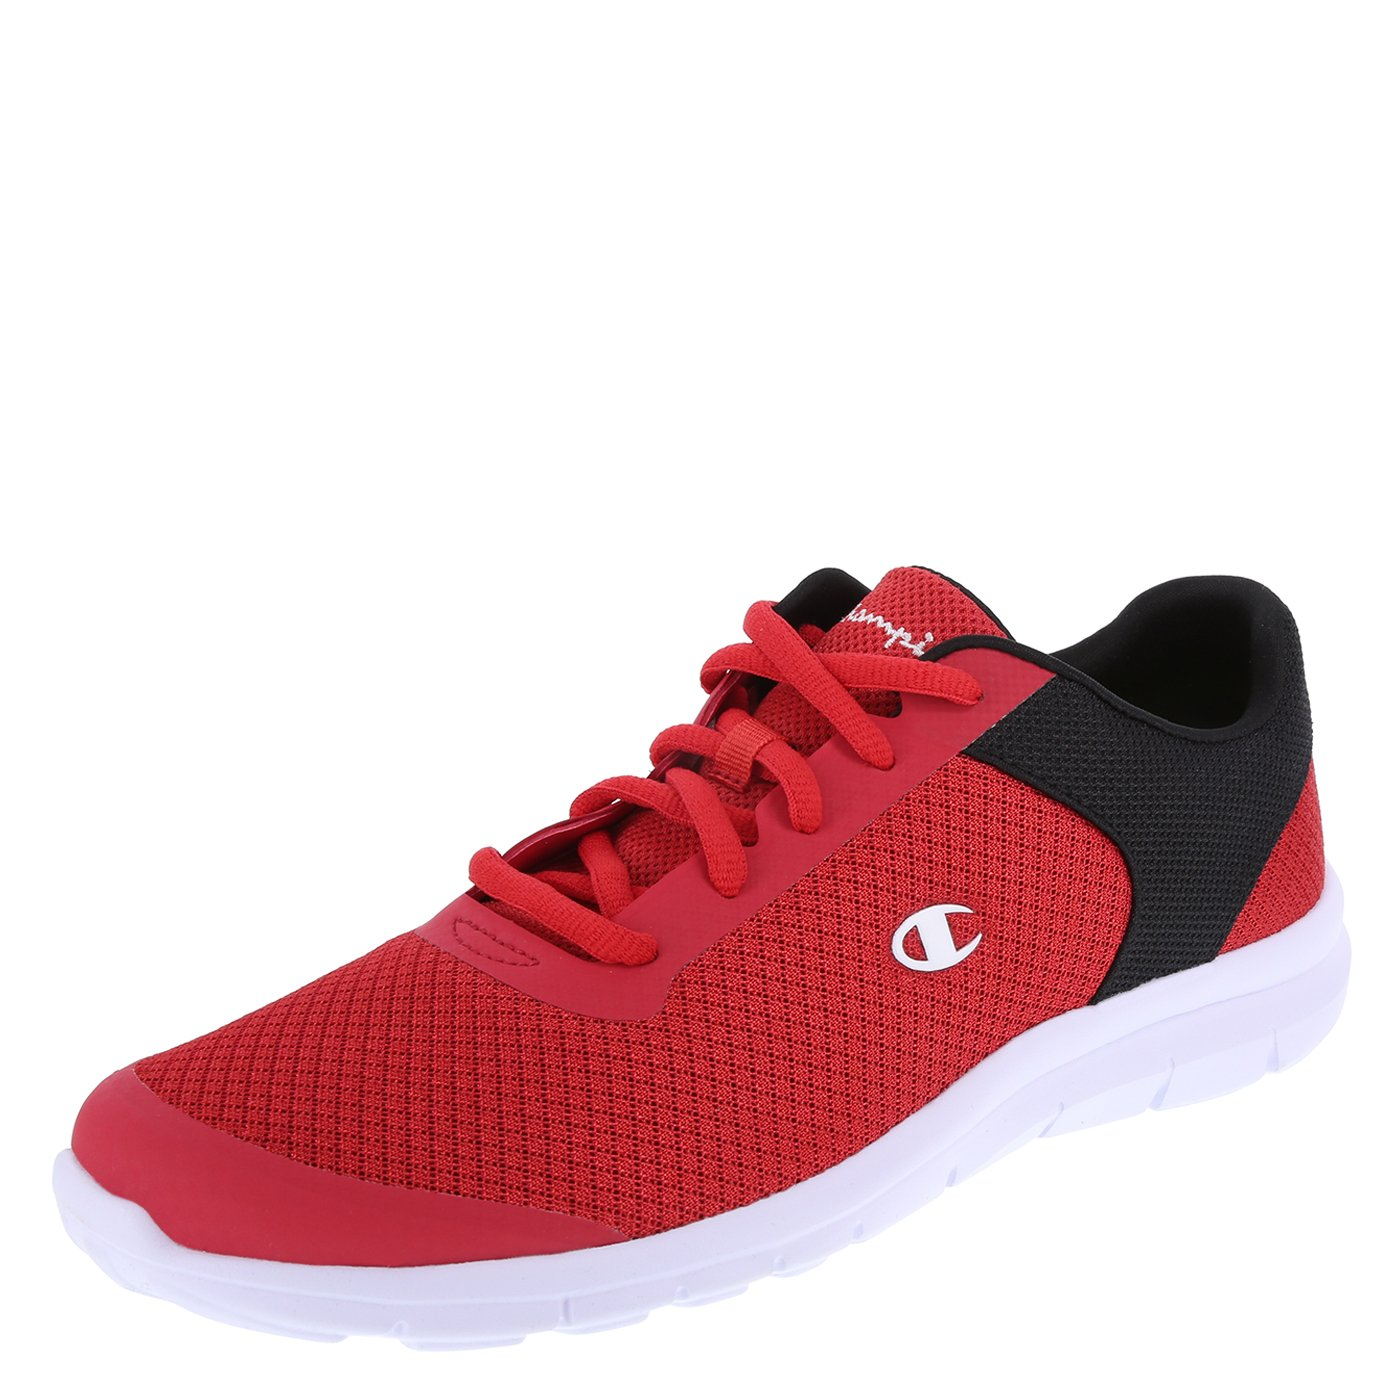 Champion Men's Gusto Cross Trainer B078YW73DV 14 D(M) US|Black Red